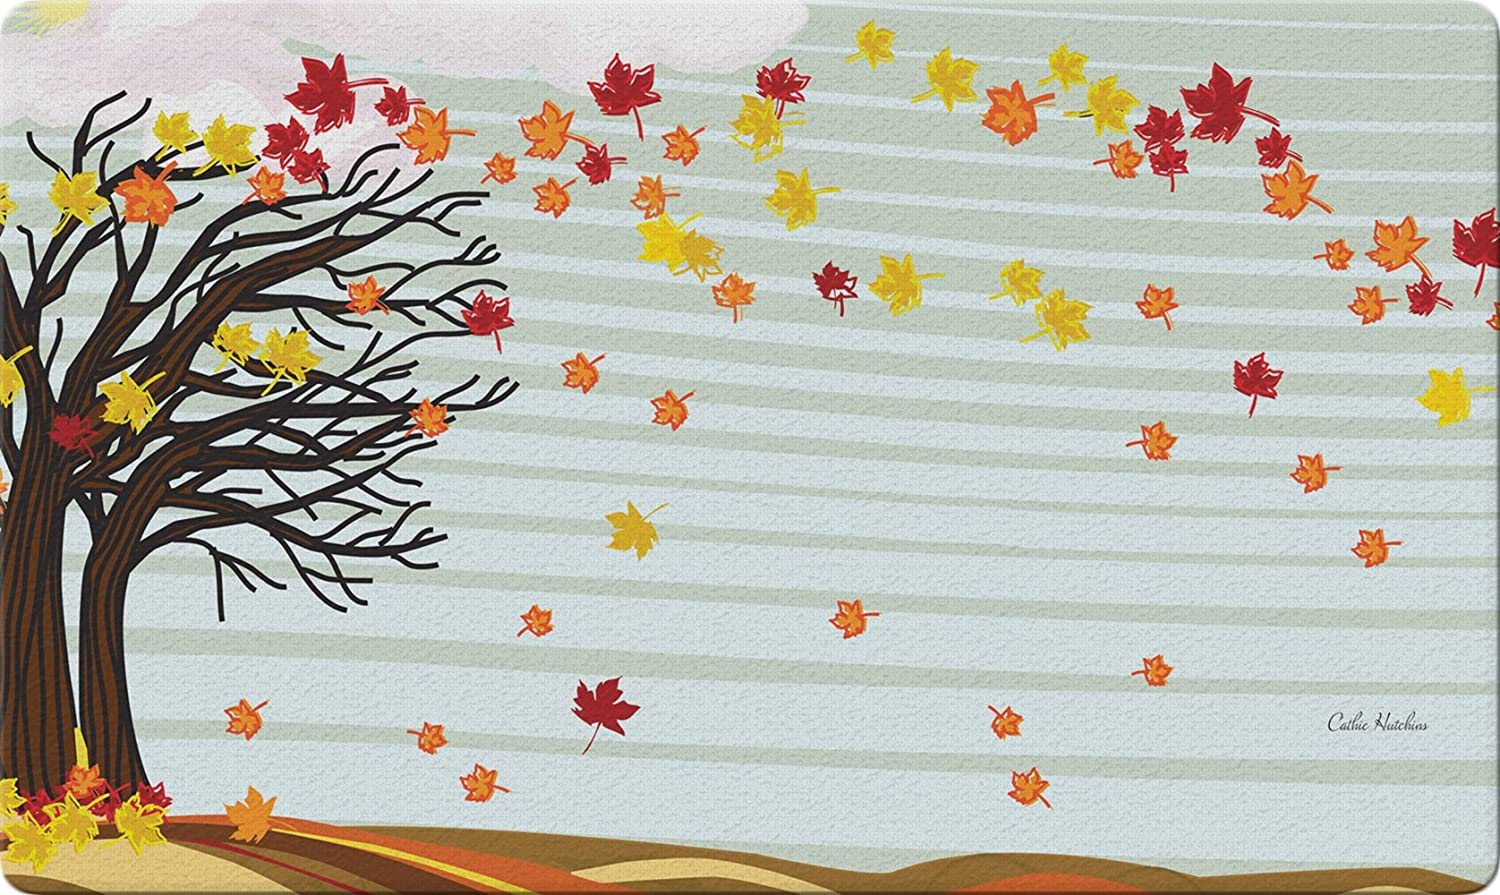 Toland Home Garden Autumn Winds 18 x 30 Inch Decorative Fall Leaf Floor Mat Blowing Leaves Doormat